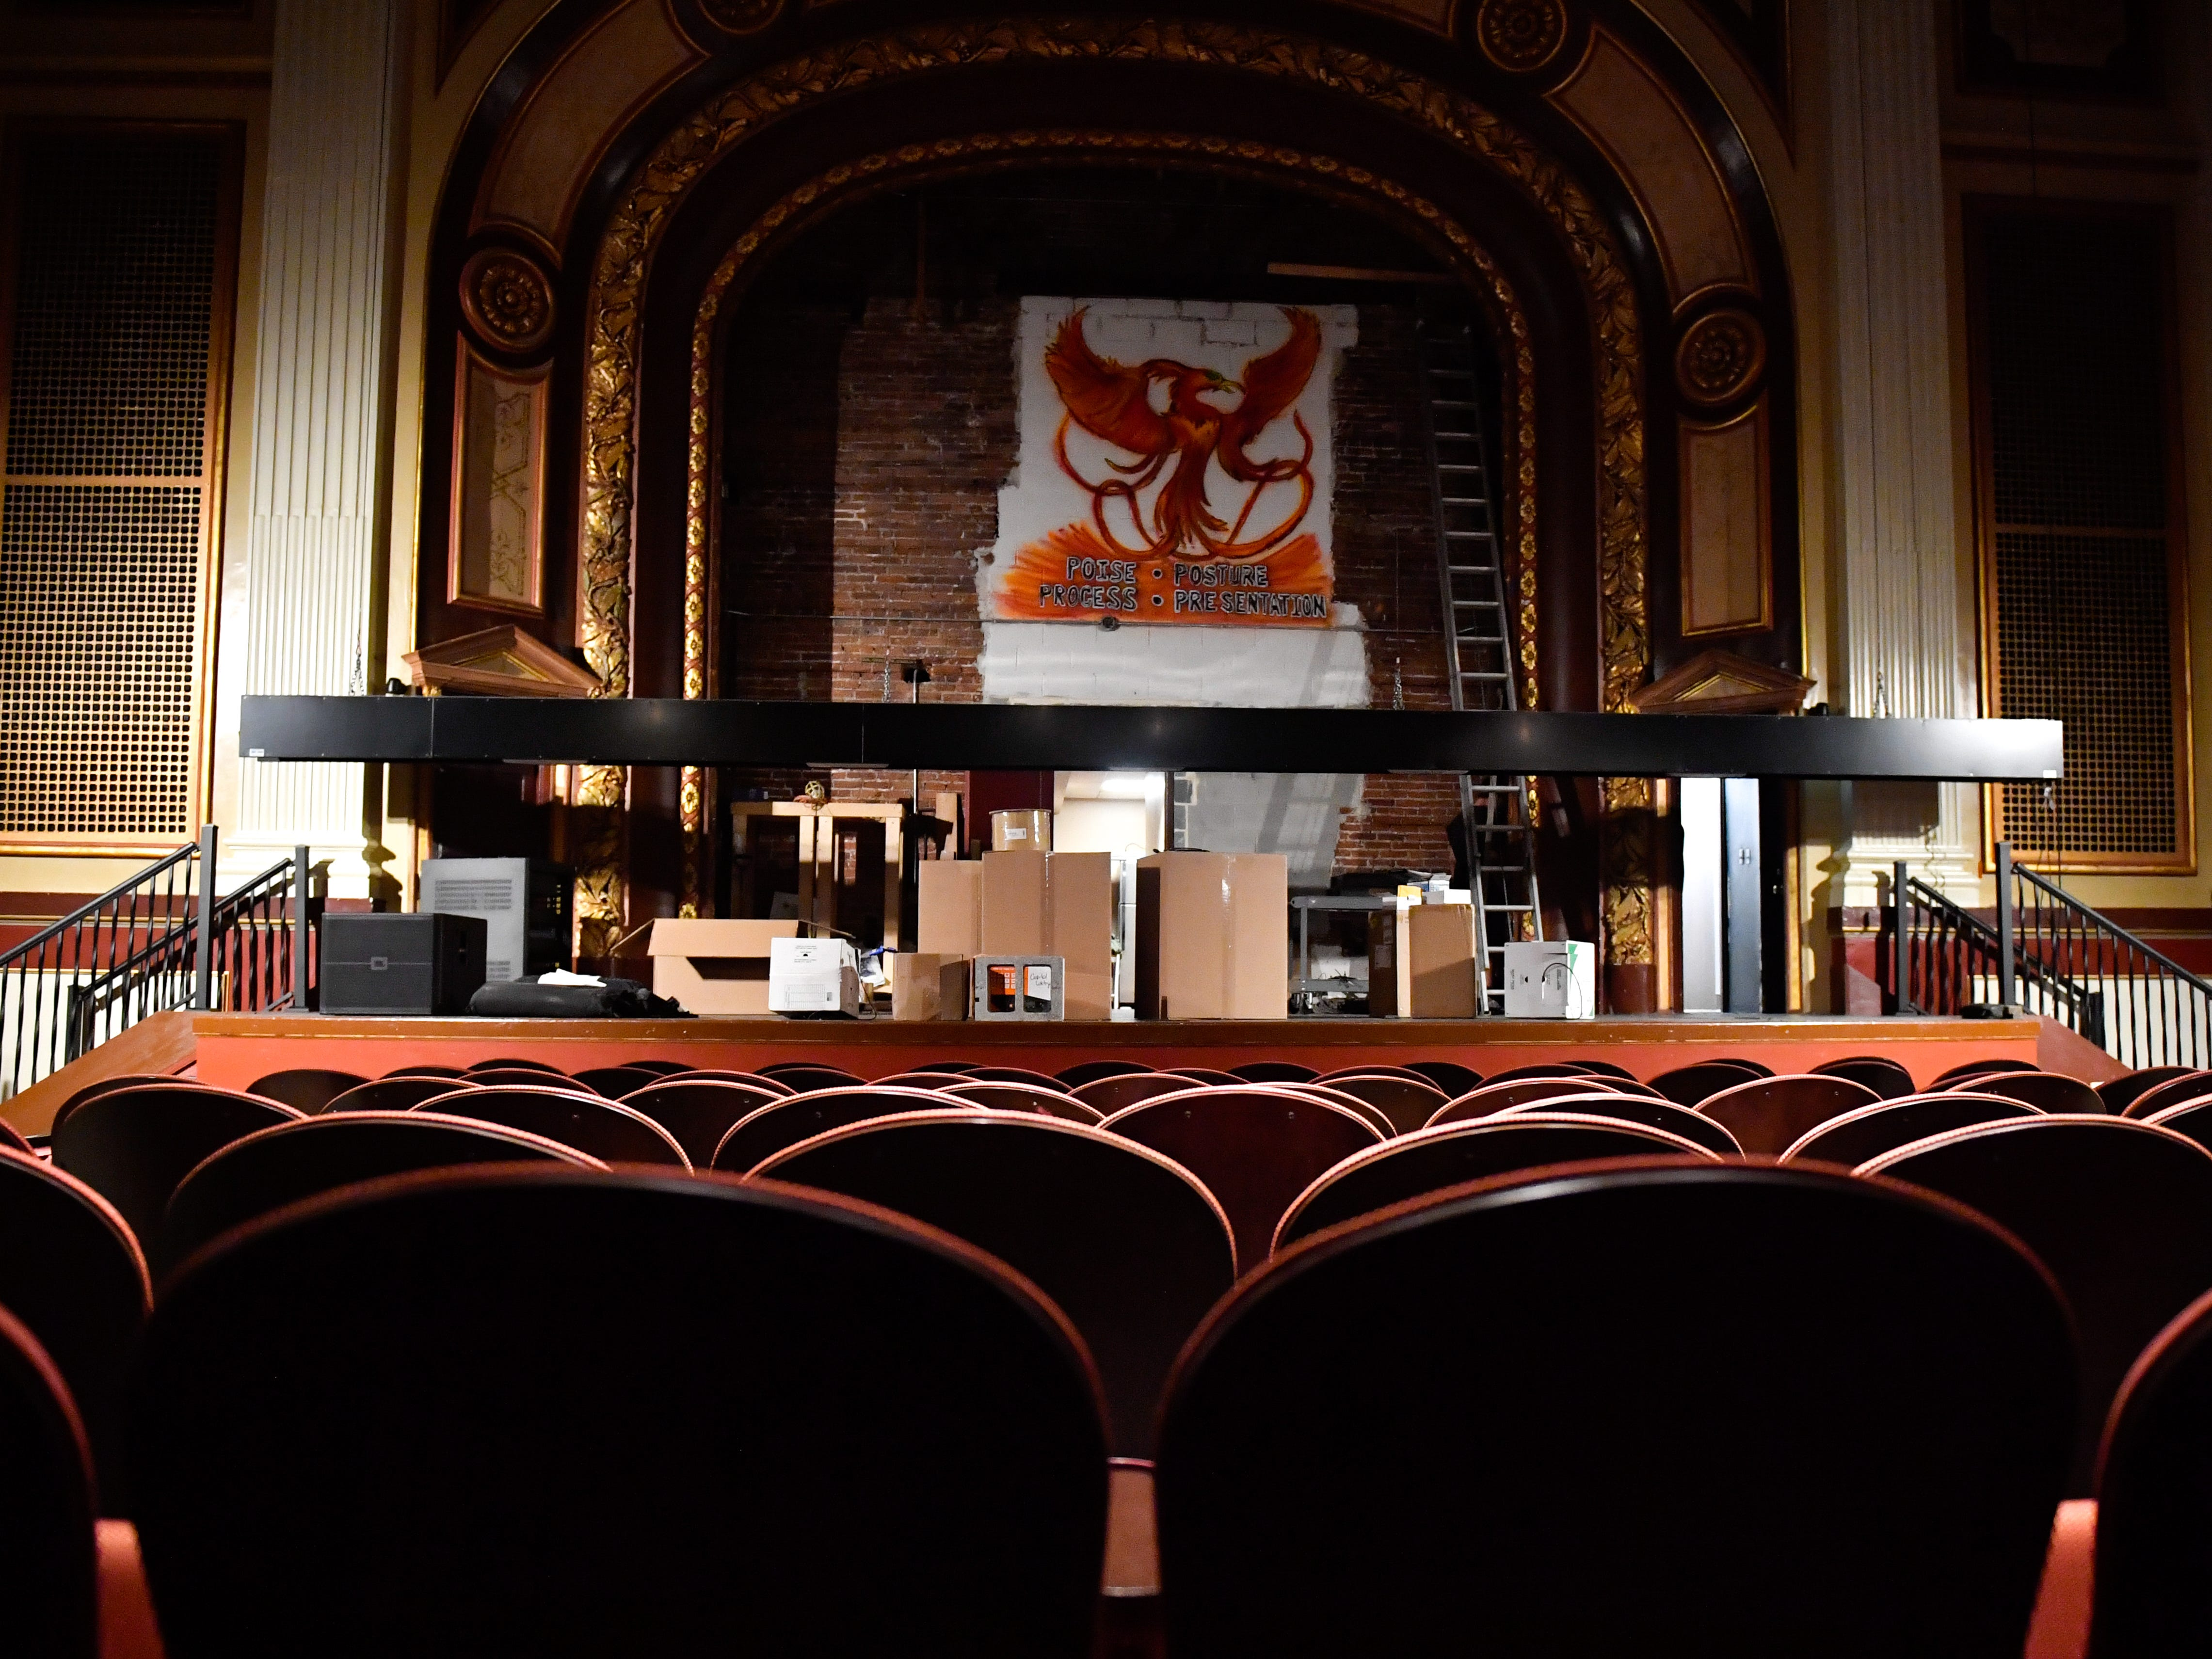 Photos: Capitol Theatre renovations nearing completion